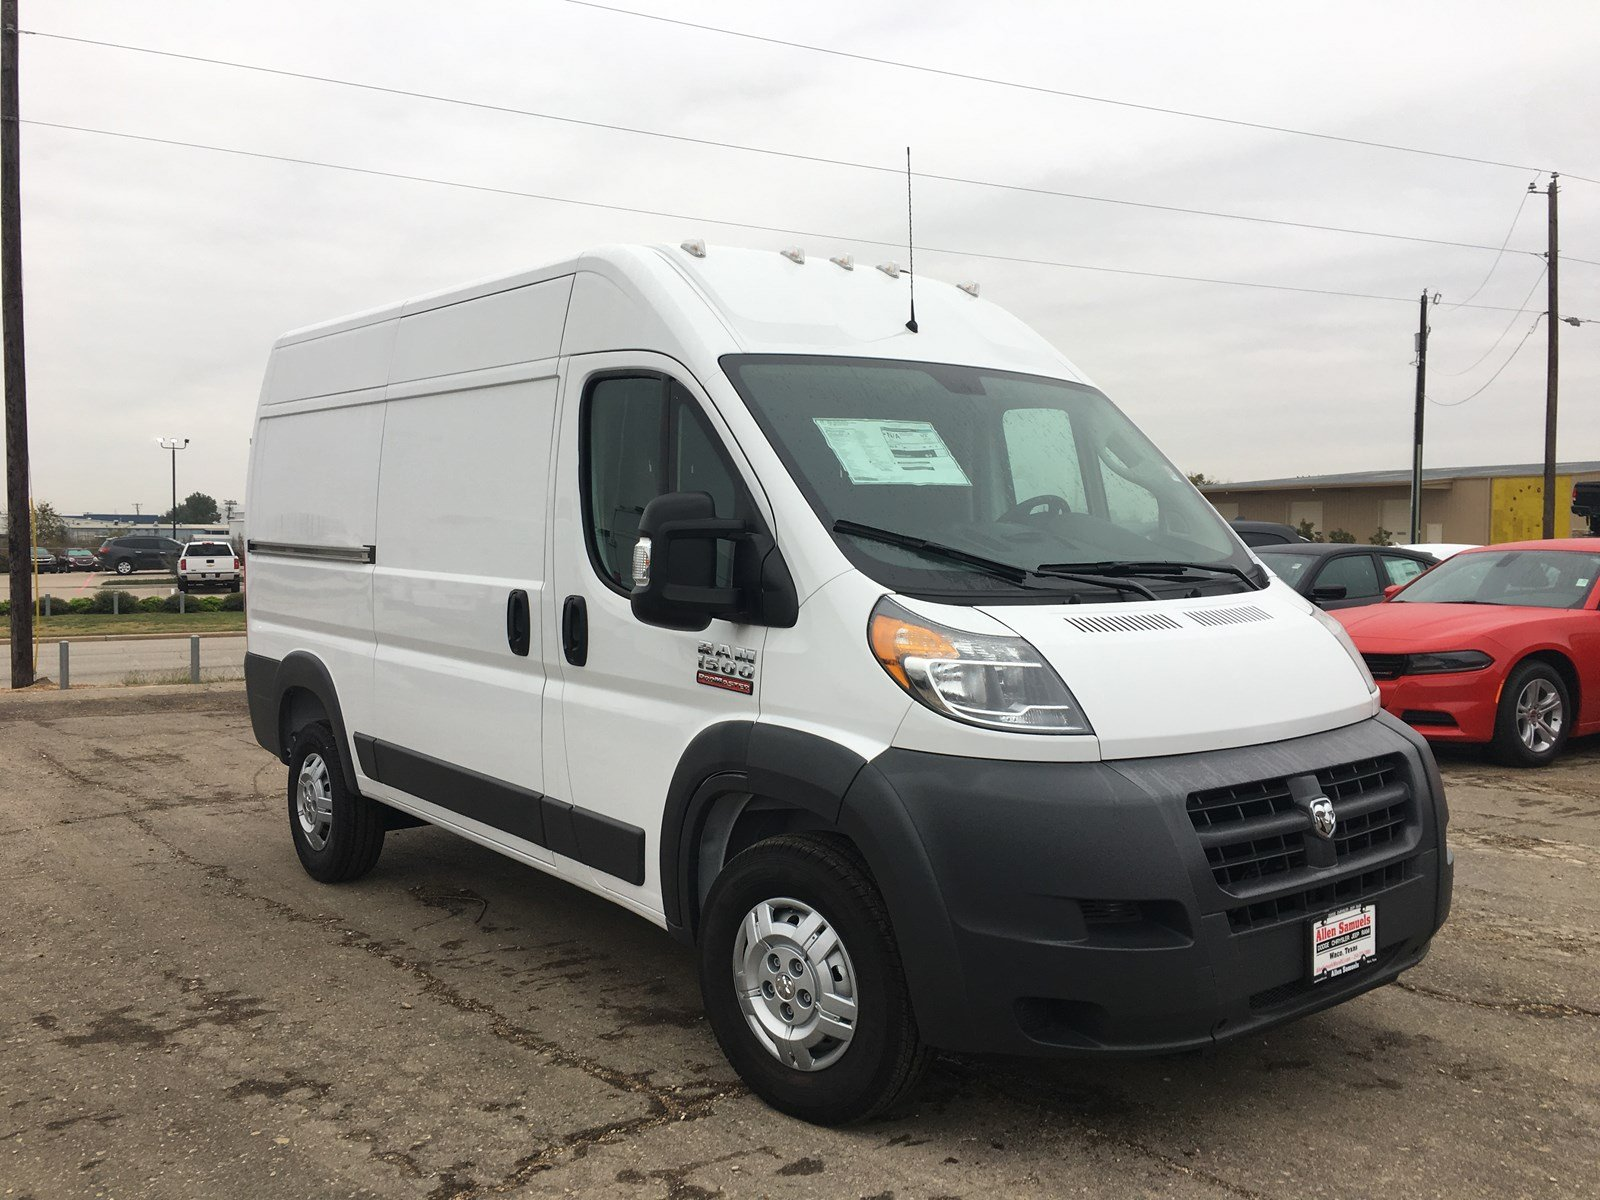 new 2018 ram promaster cargo van cargo van in waco 18t70004 allen samuels dodge chrysler jeep ram. Black Bedroom Furniture Sets. Home Design Ideas